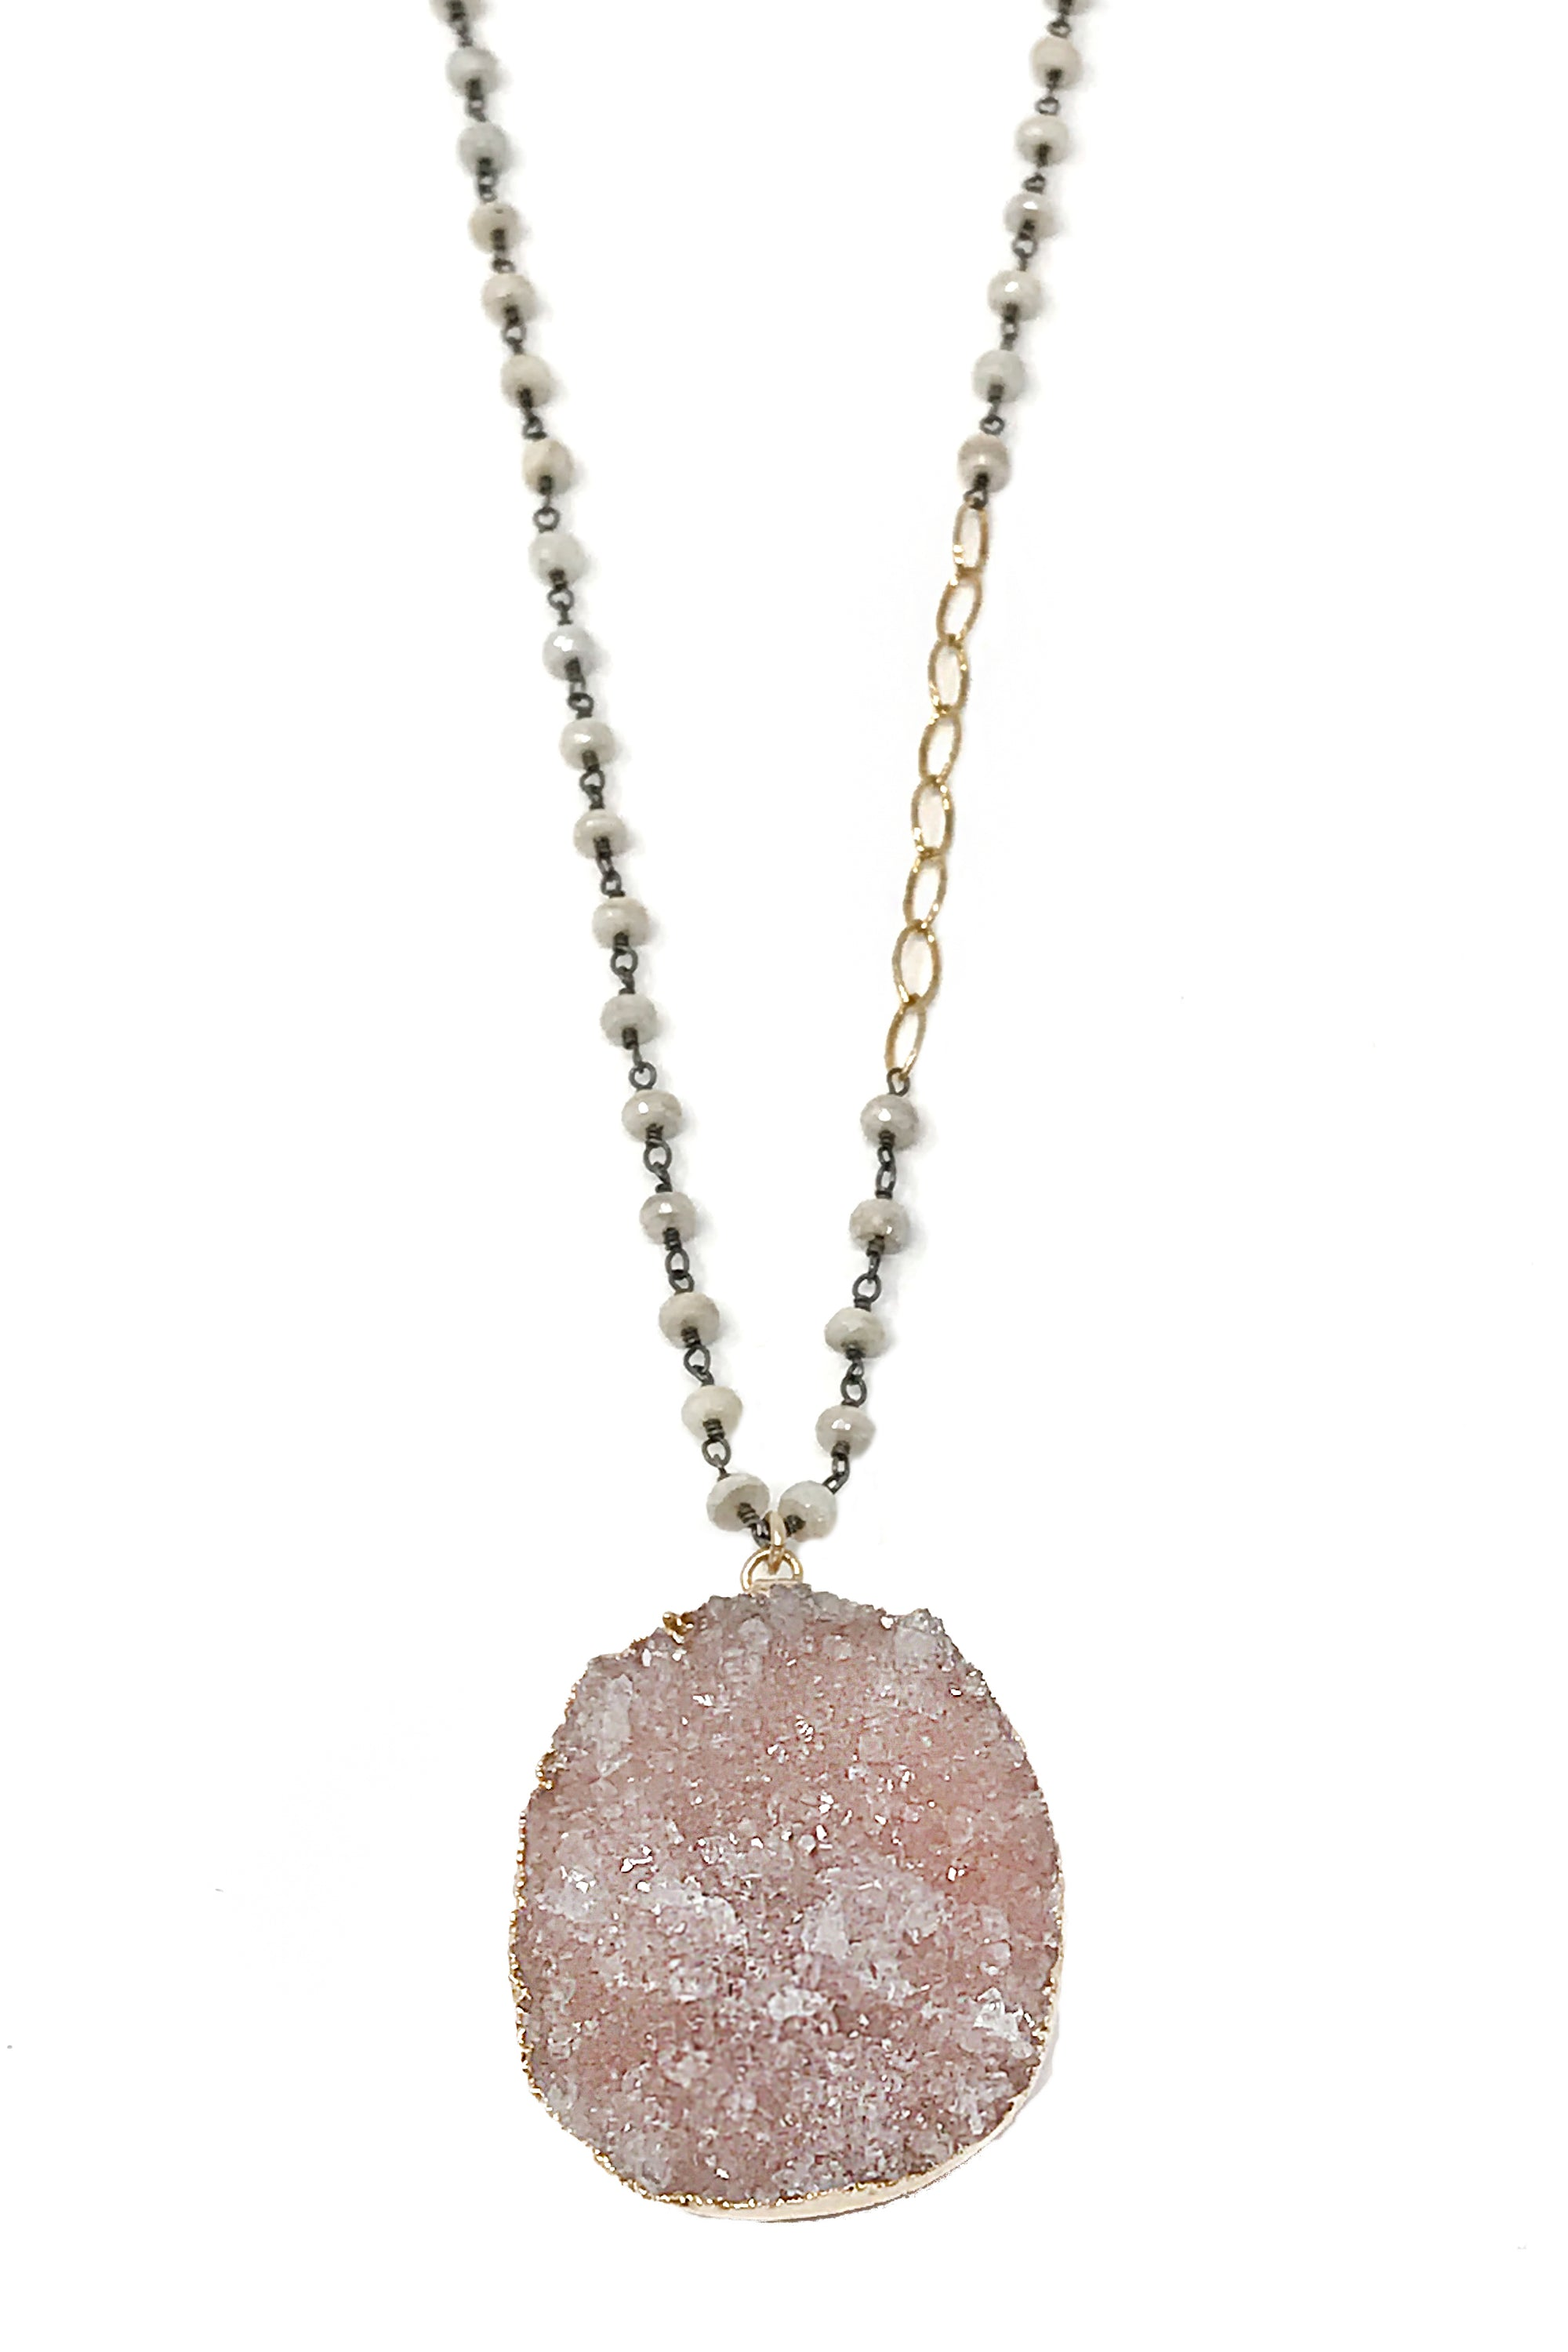 Silverite and Druzy Necklace